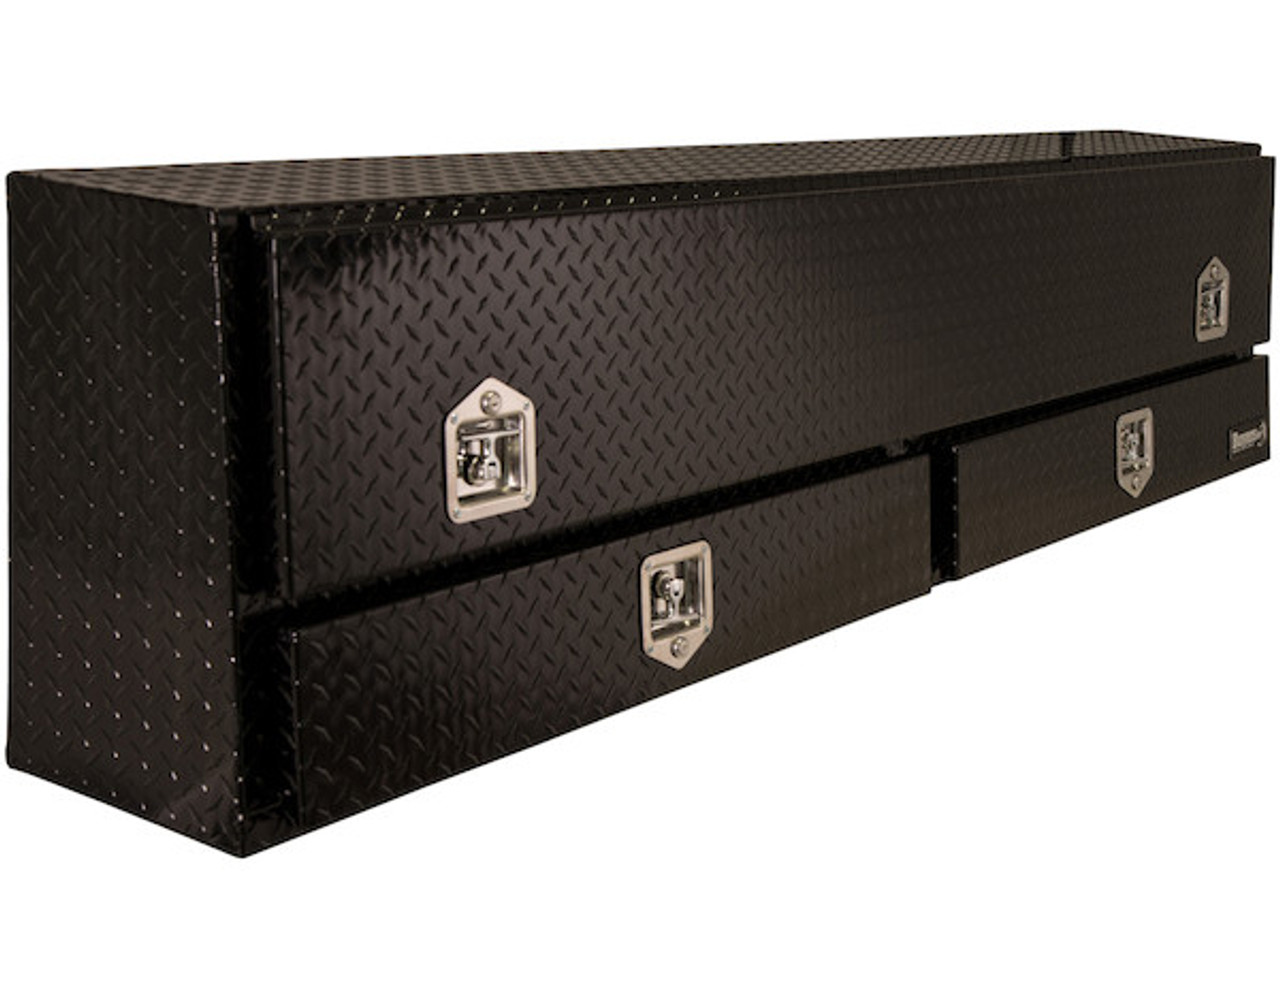 """1725651 BUYERS PRODUCTS BLACK DIAMOND TREAD ALUMINUM CONTRACTOR TRUCK BOX WITH LOWER DRAWERS 21""""HX13.5""""DX88""""W"""